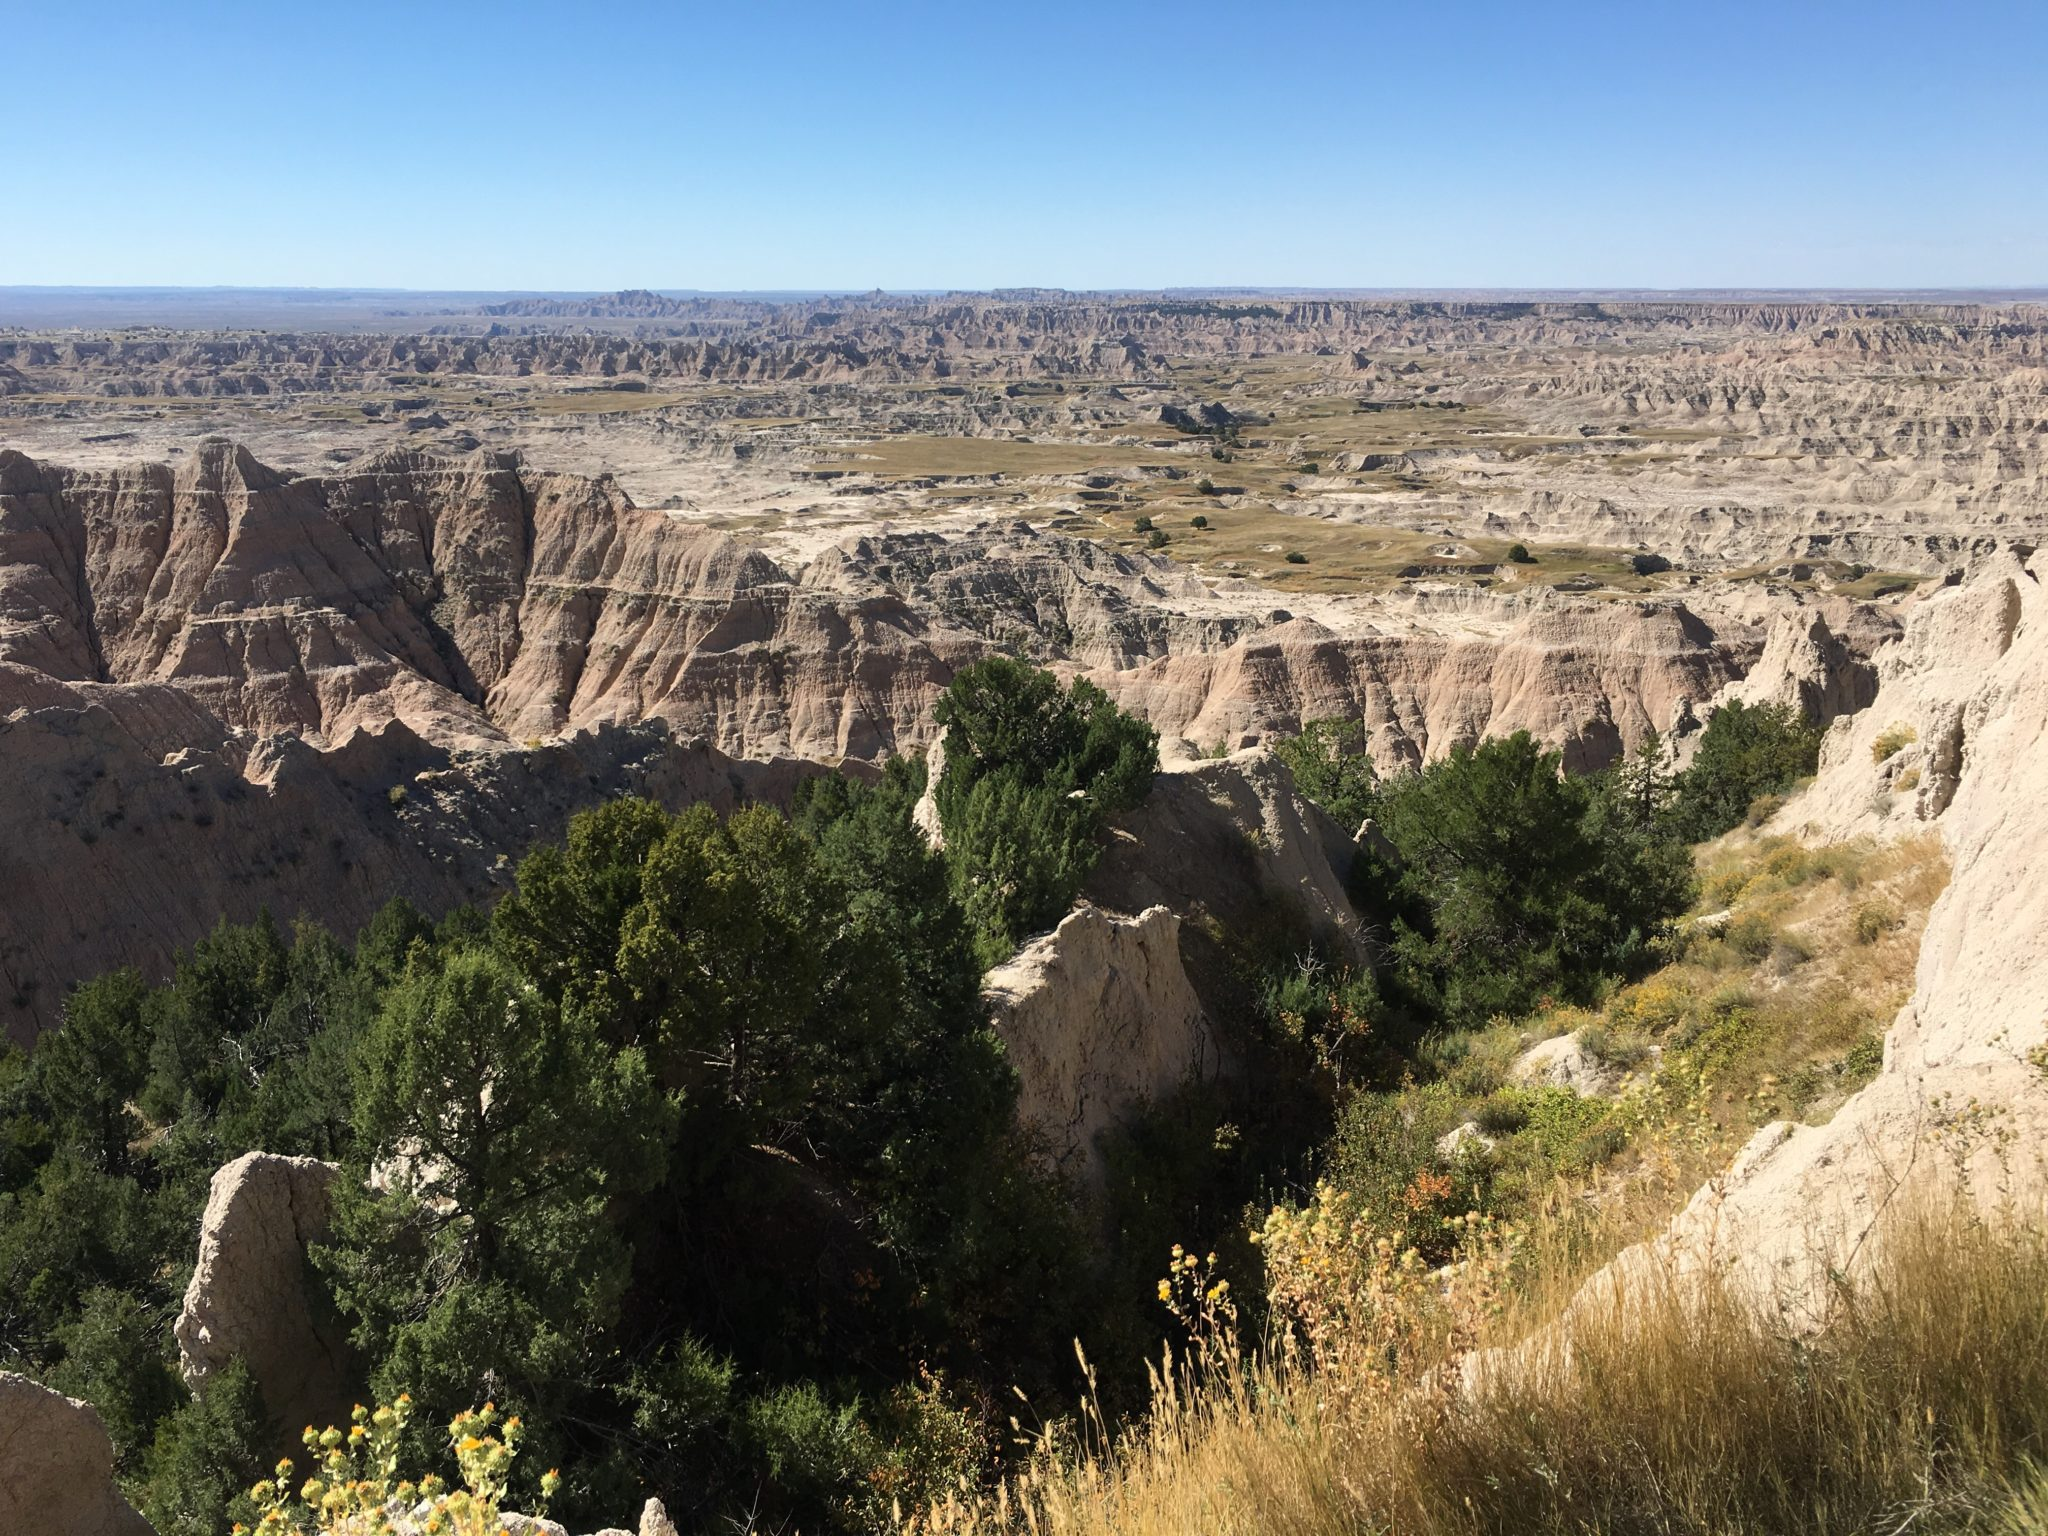 Badlands National Park – Part 2